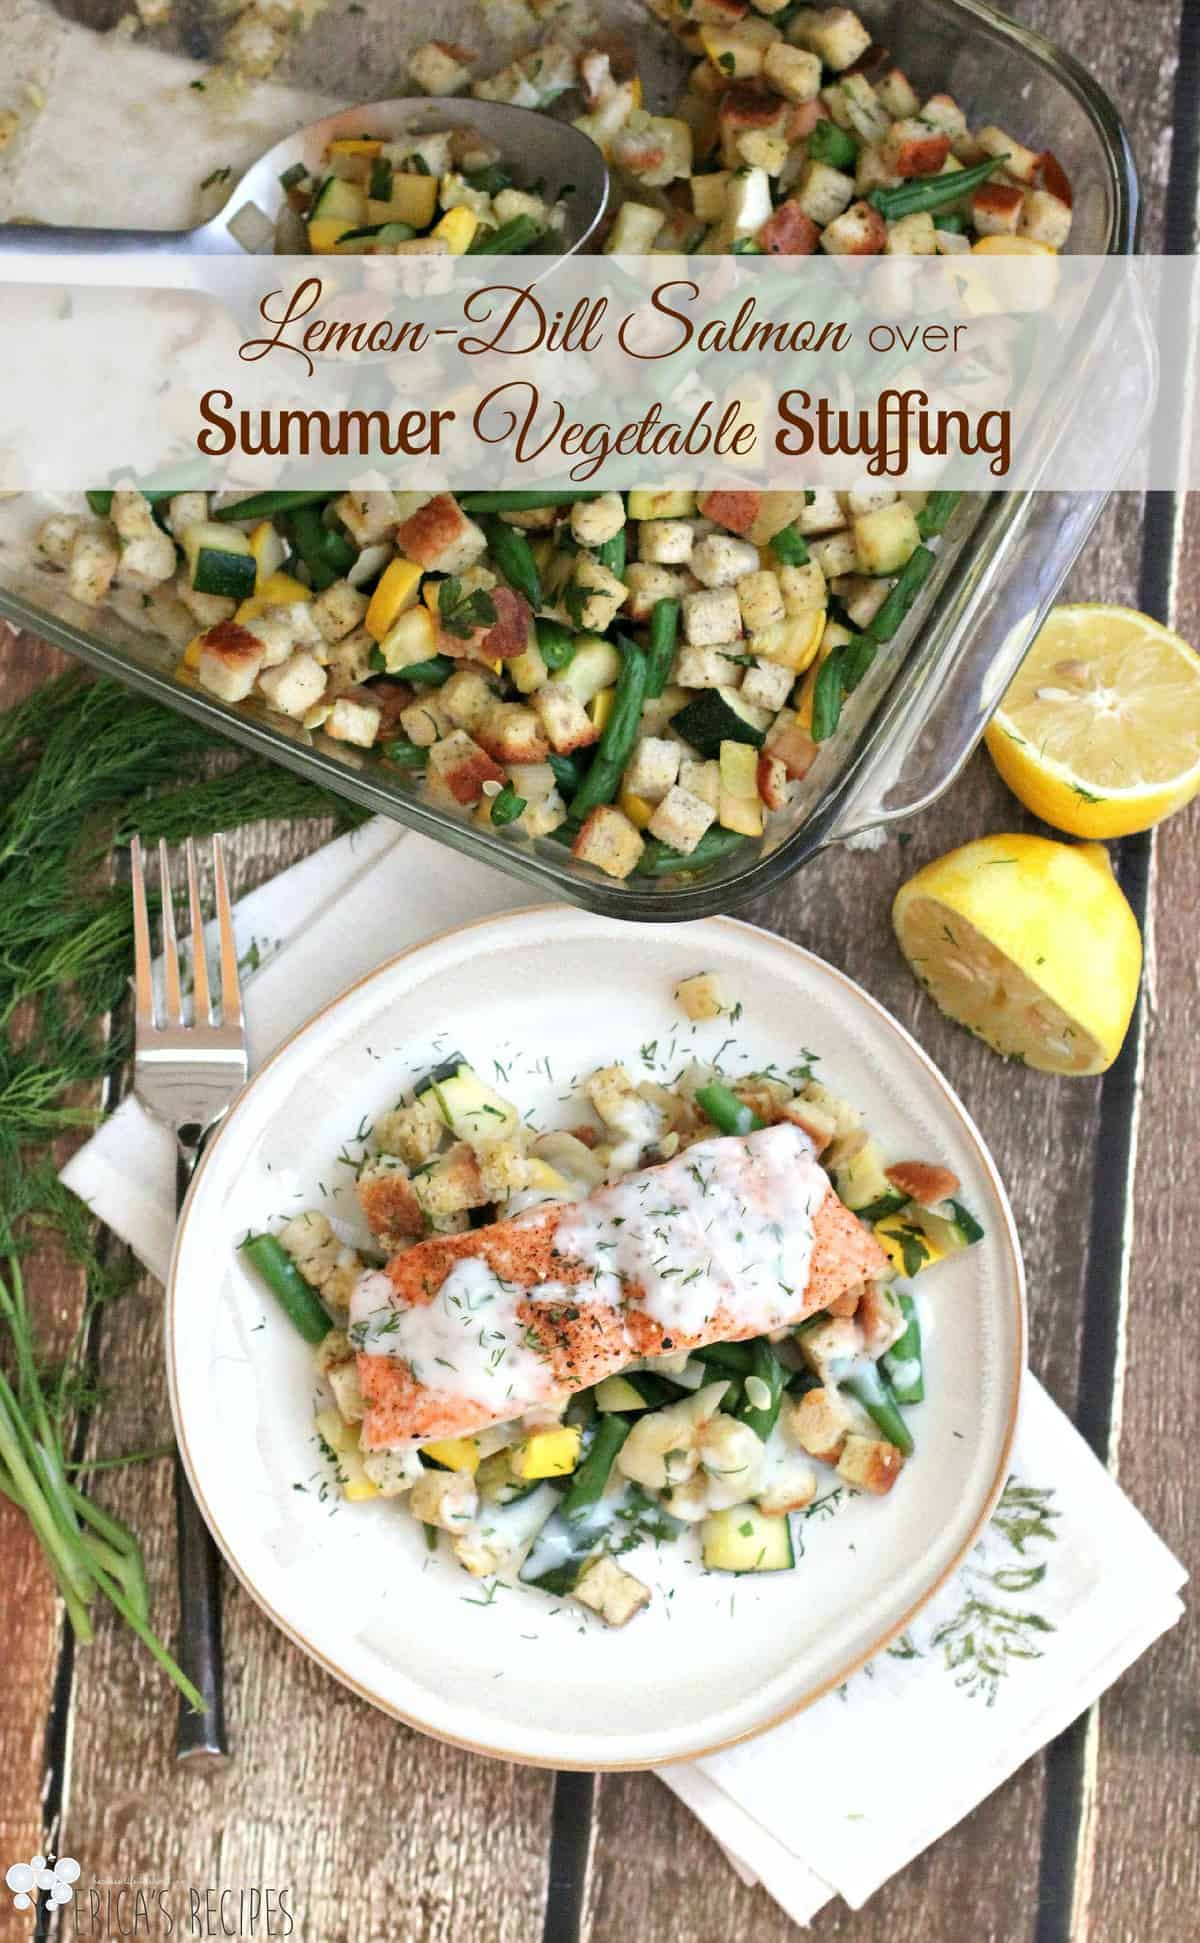 Lemon-Dill Salmon over Summer Vegetable Stuffing #recipe #food #salmon #seafood #dinner